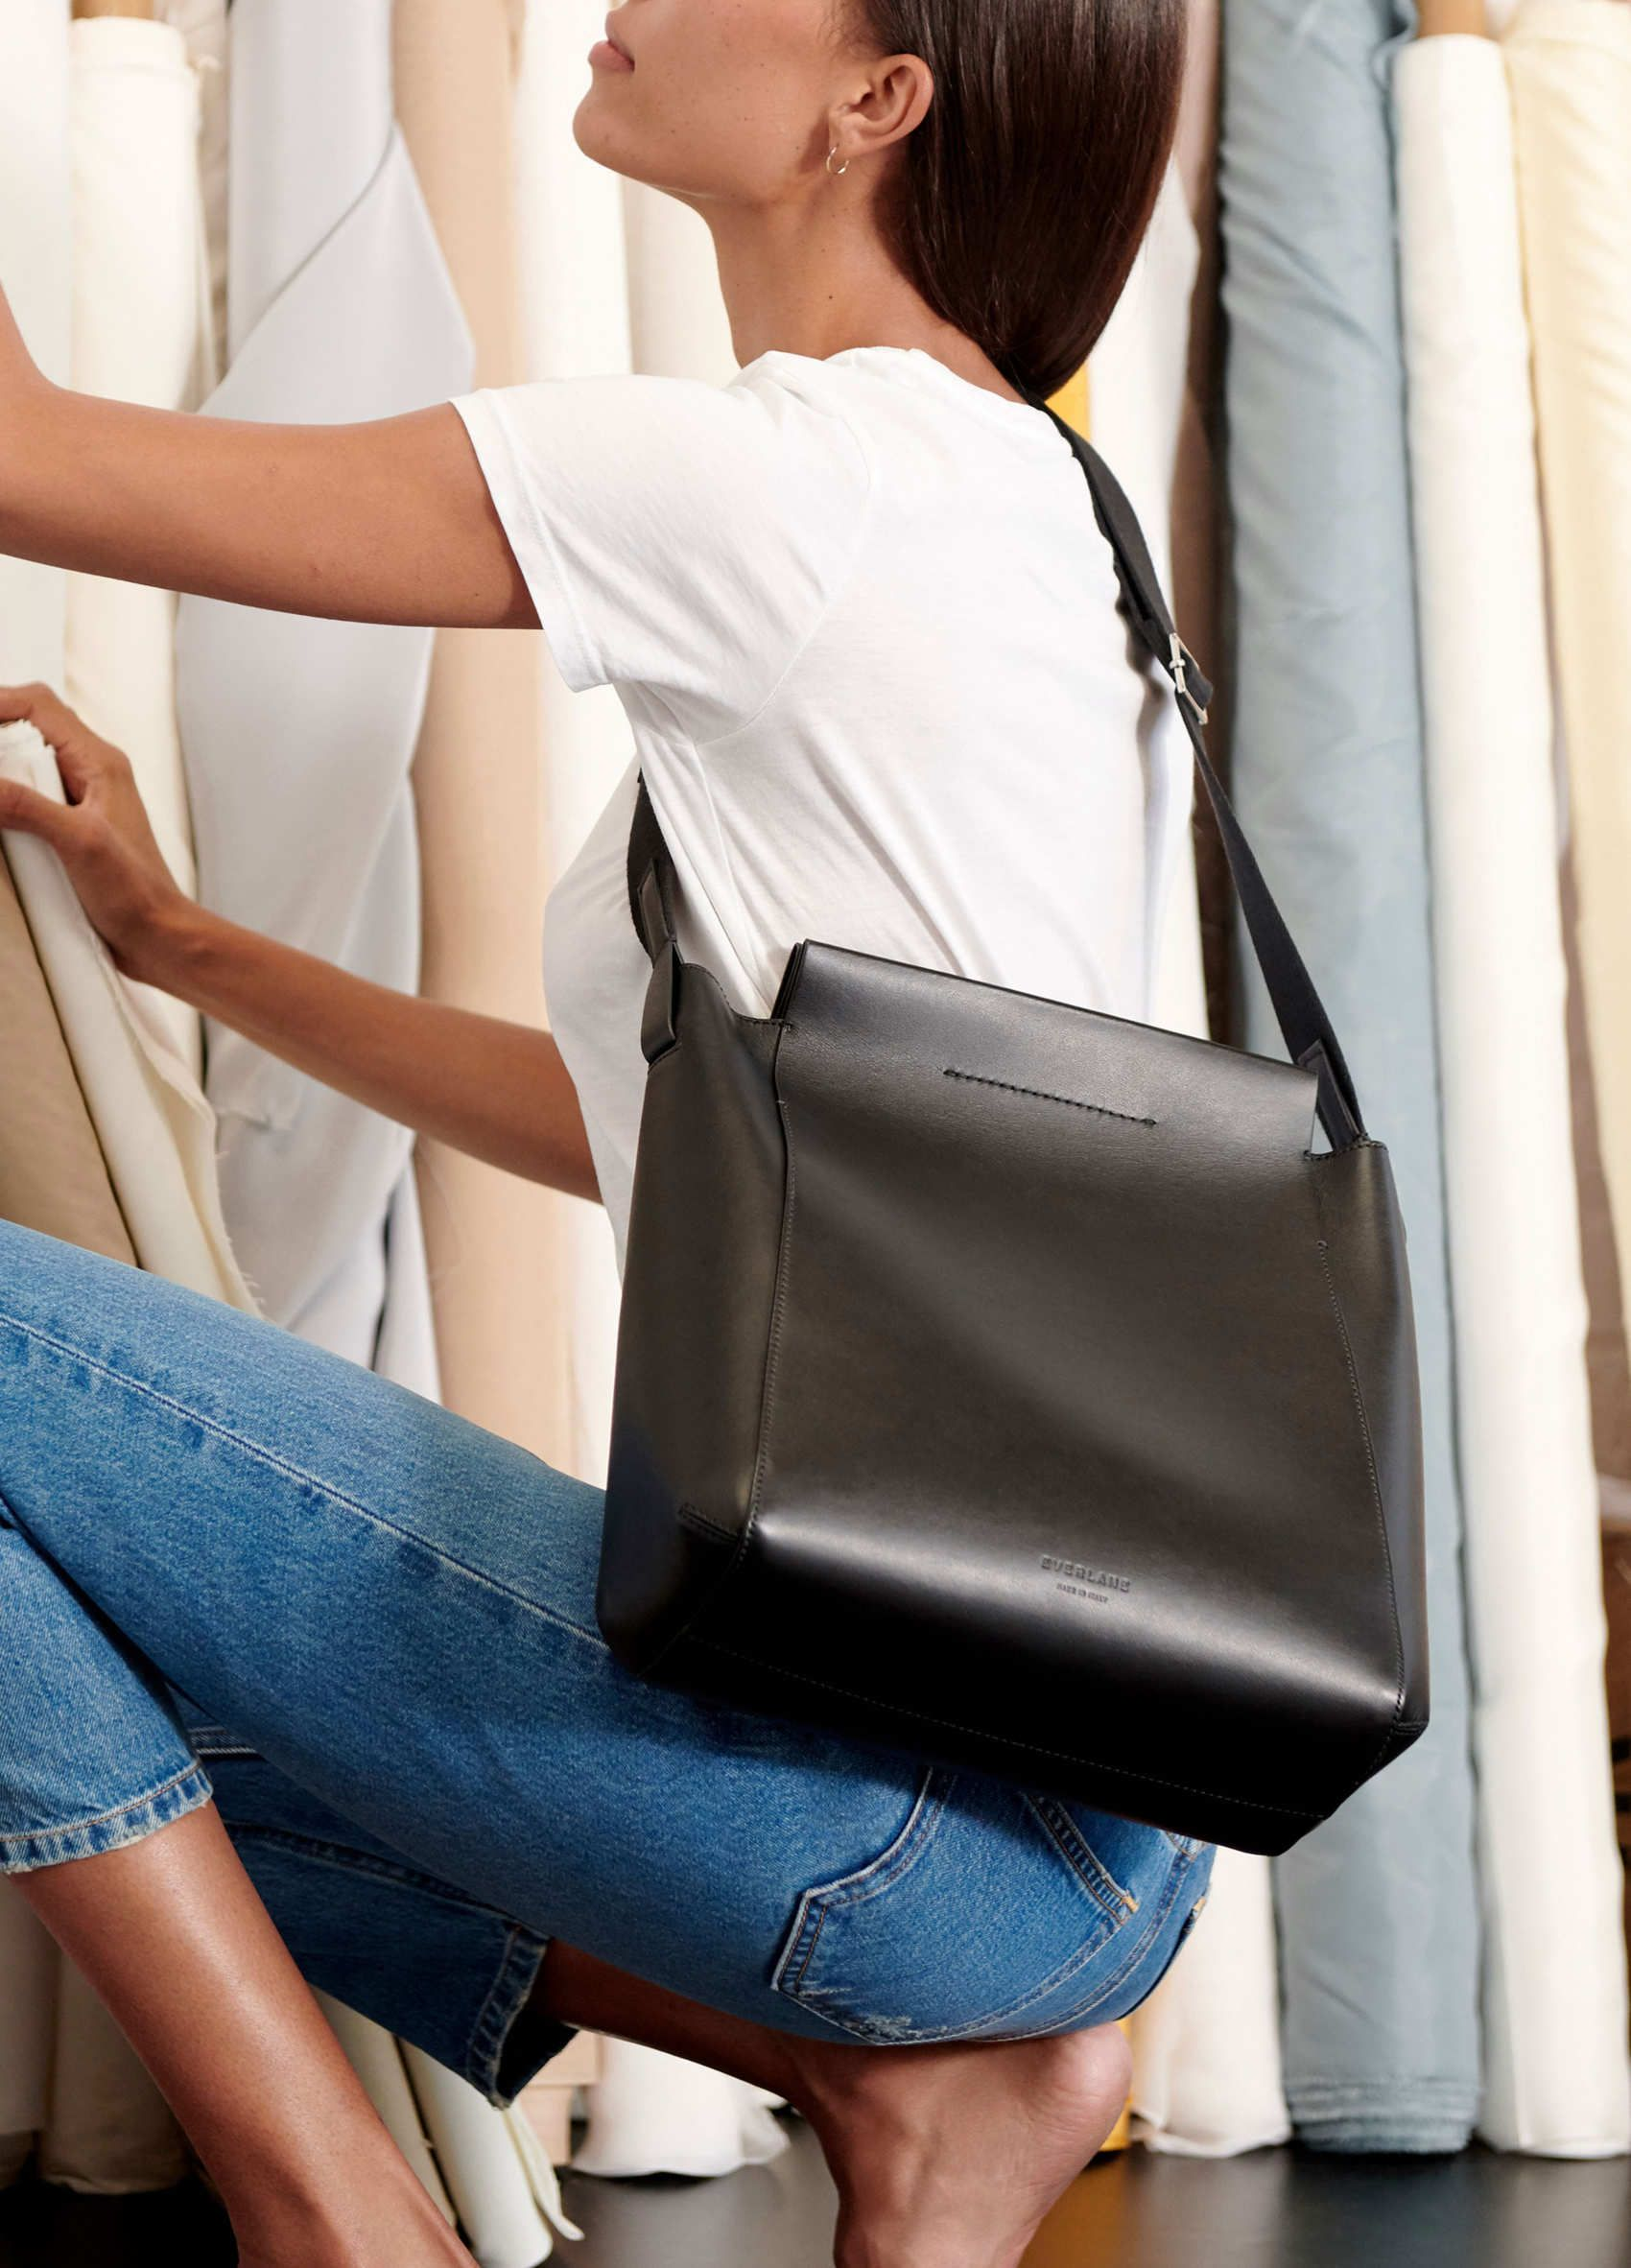 a9bd3a461 Everlane The Form Bag   Style   Bags, Black leather bags, Everlane shoes